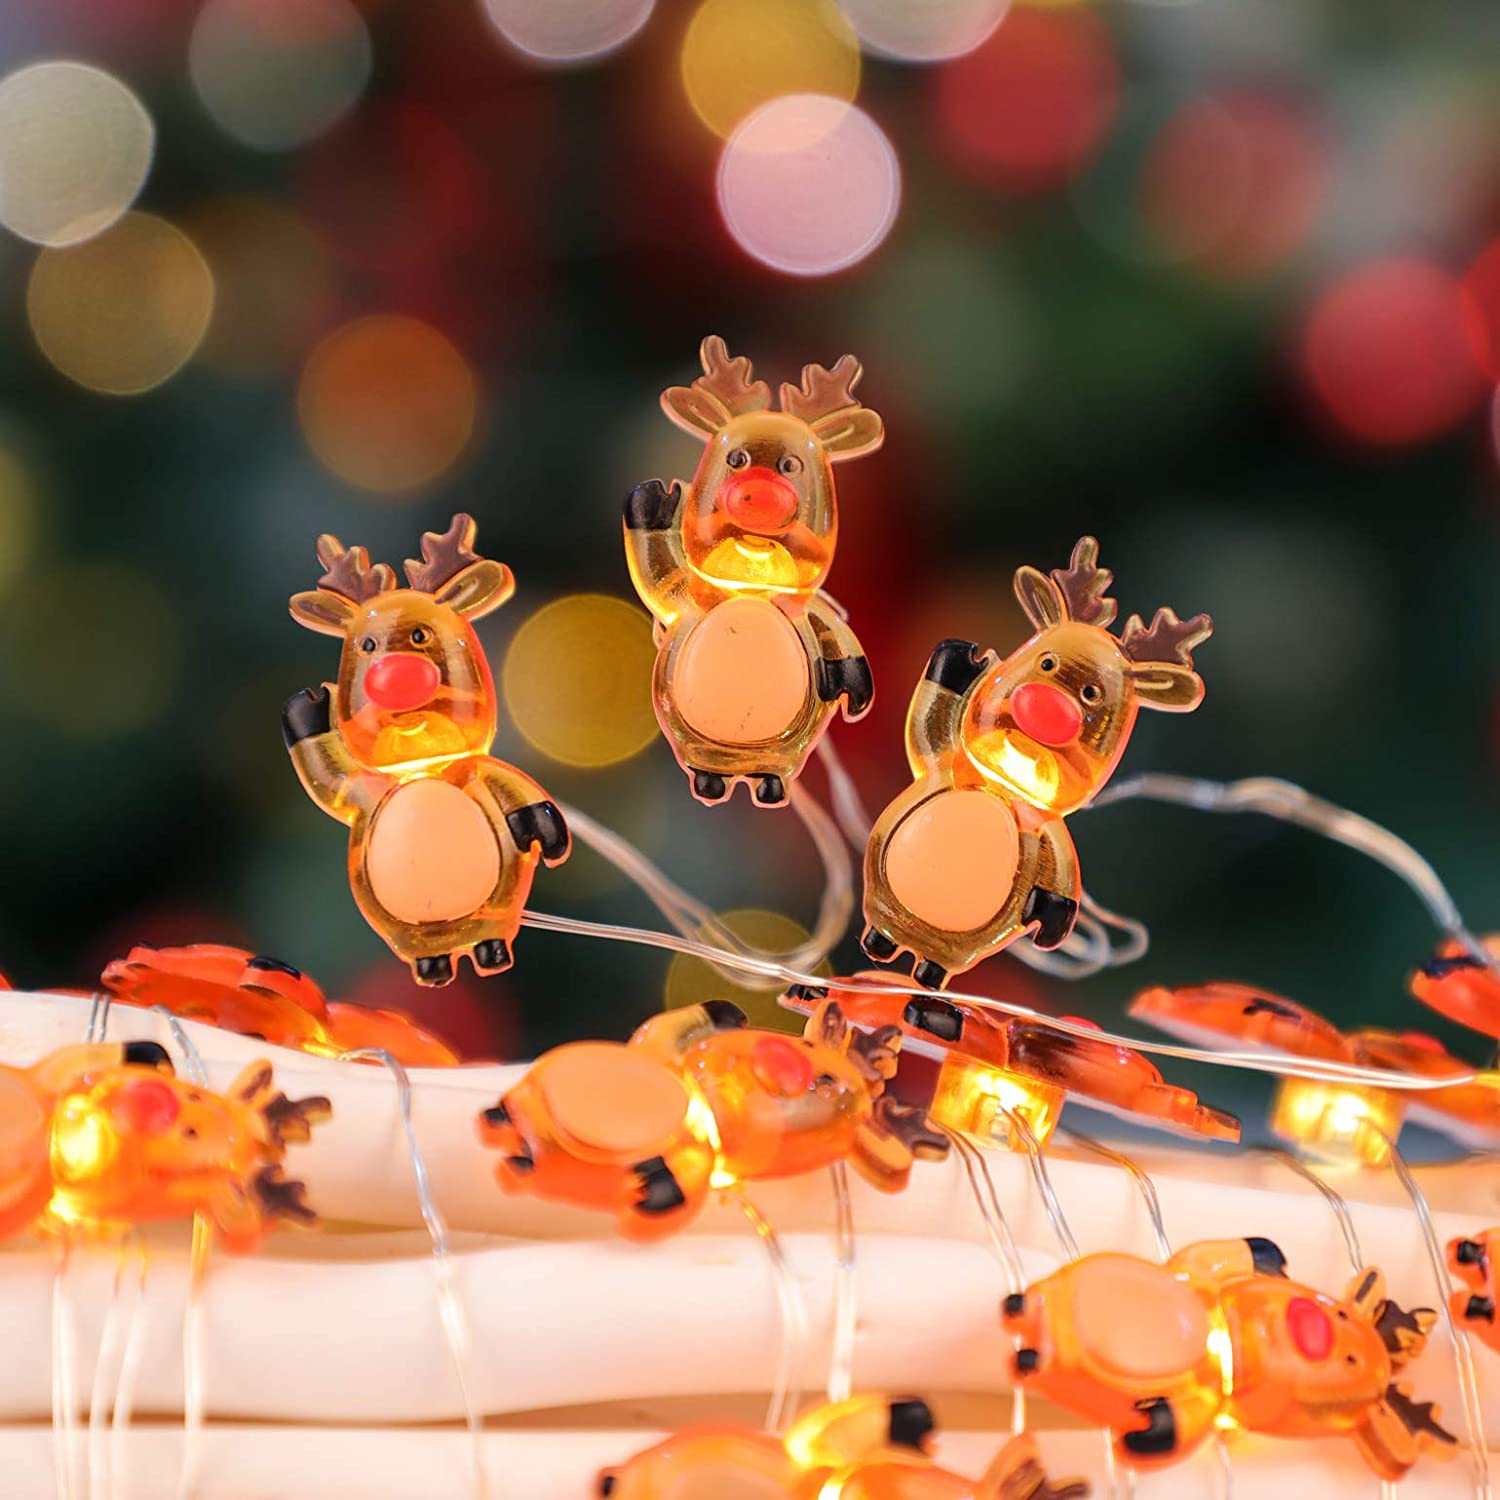 10 Ft 30 LED Orange Reindeer String Lights Decorative Lighting Strings, USB & Battery Powered Fairy Lights with Remote Control and Timer for Kid's Room Holiday Wedding Bedroom Christmas Party Decor